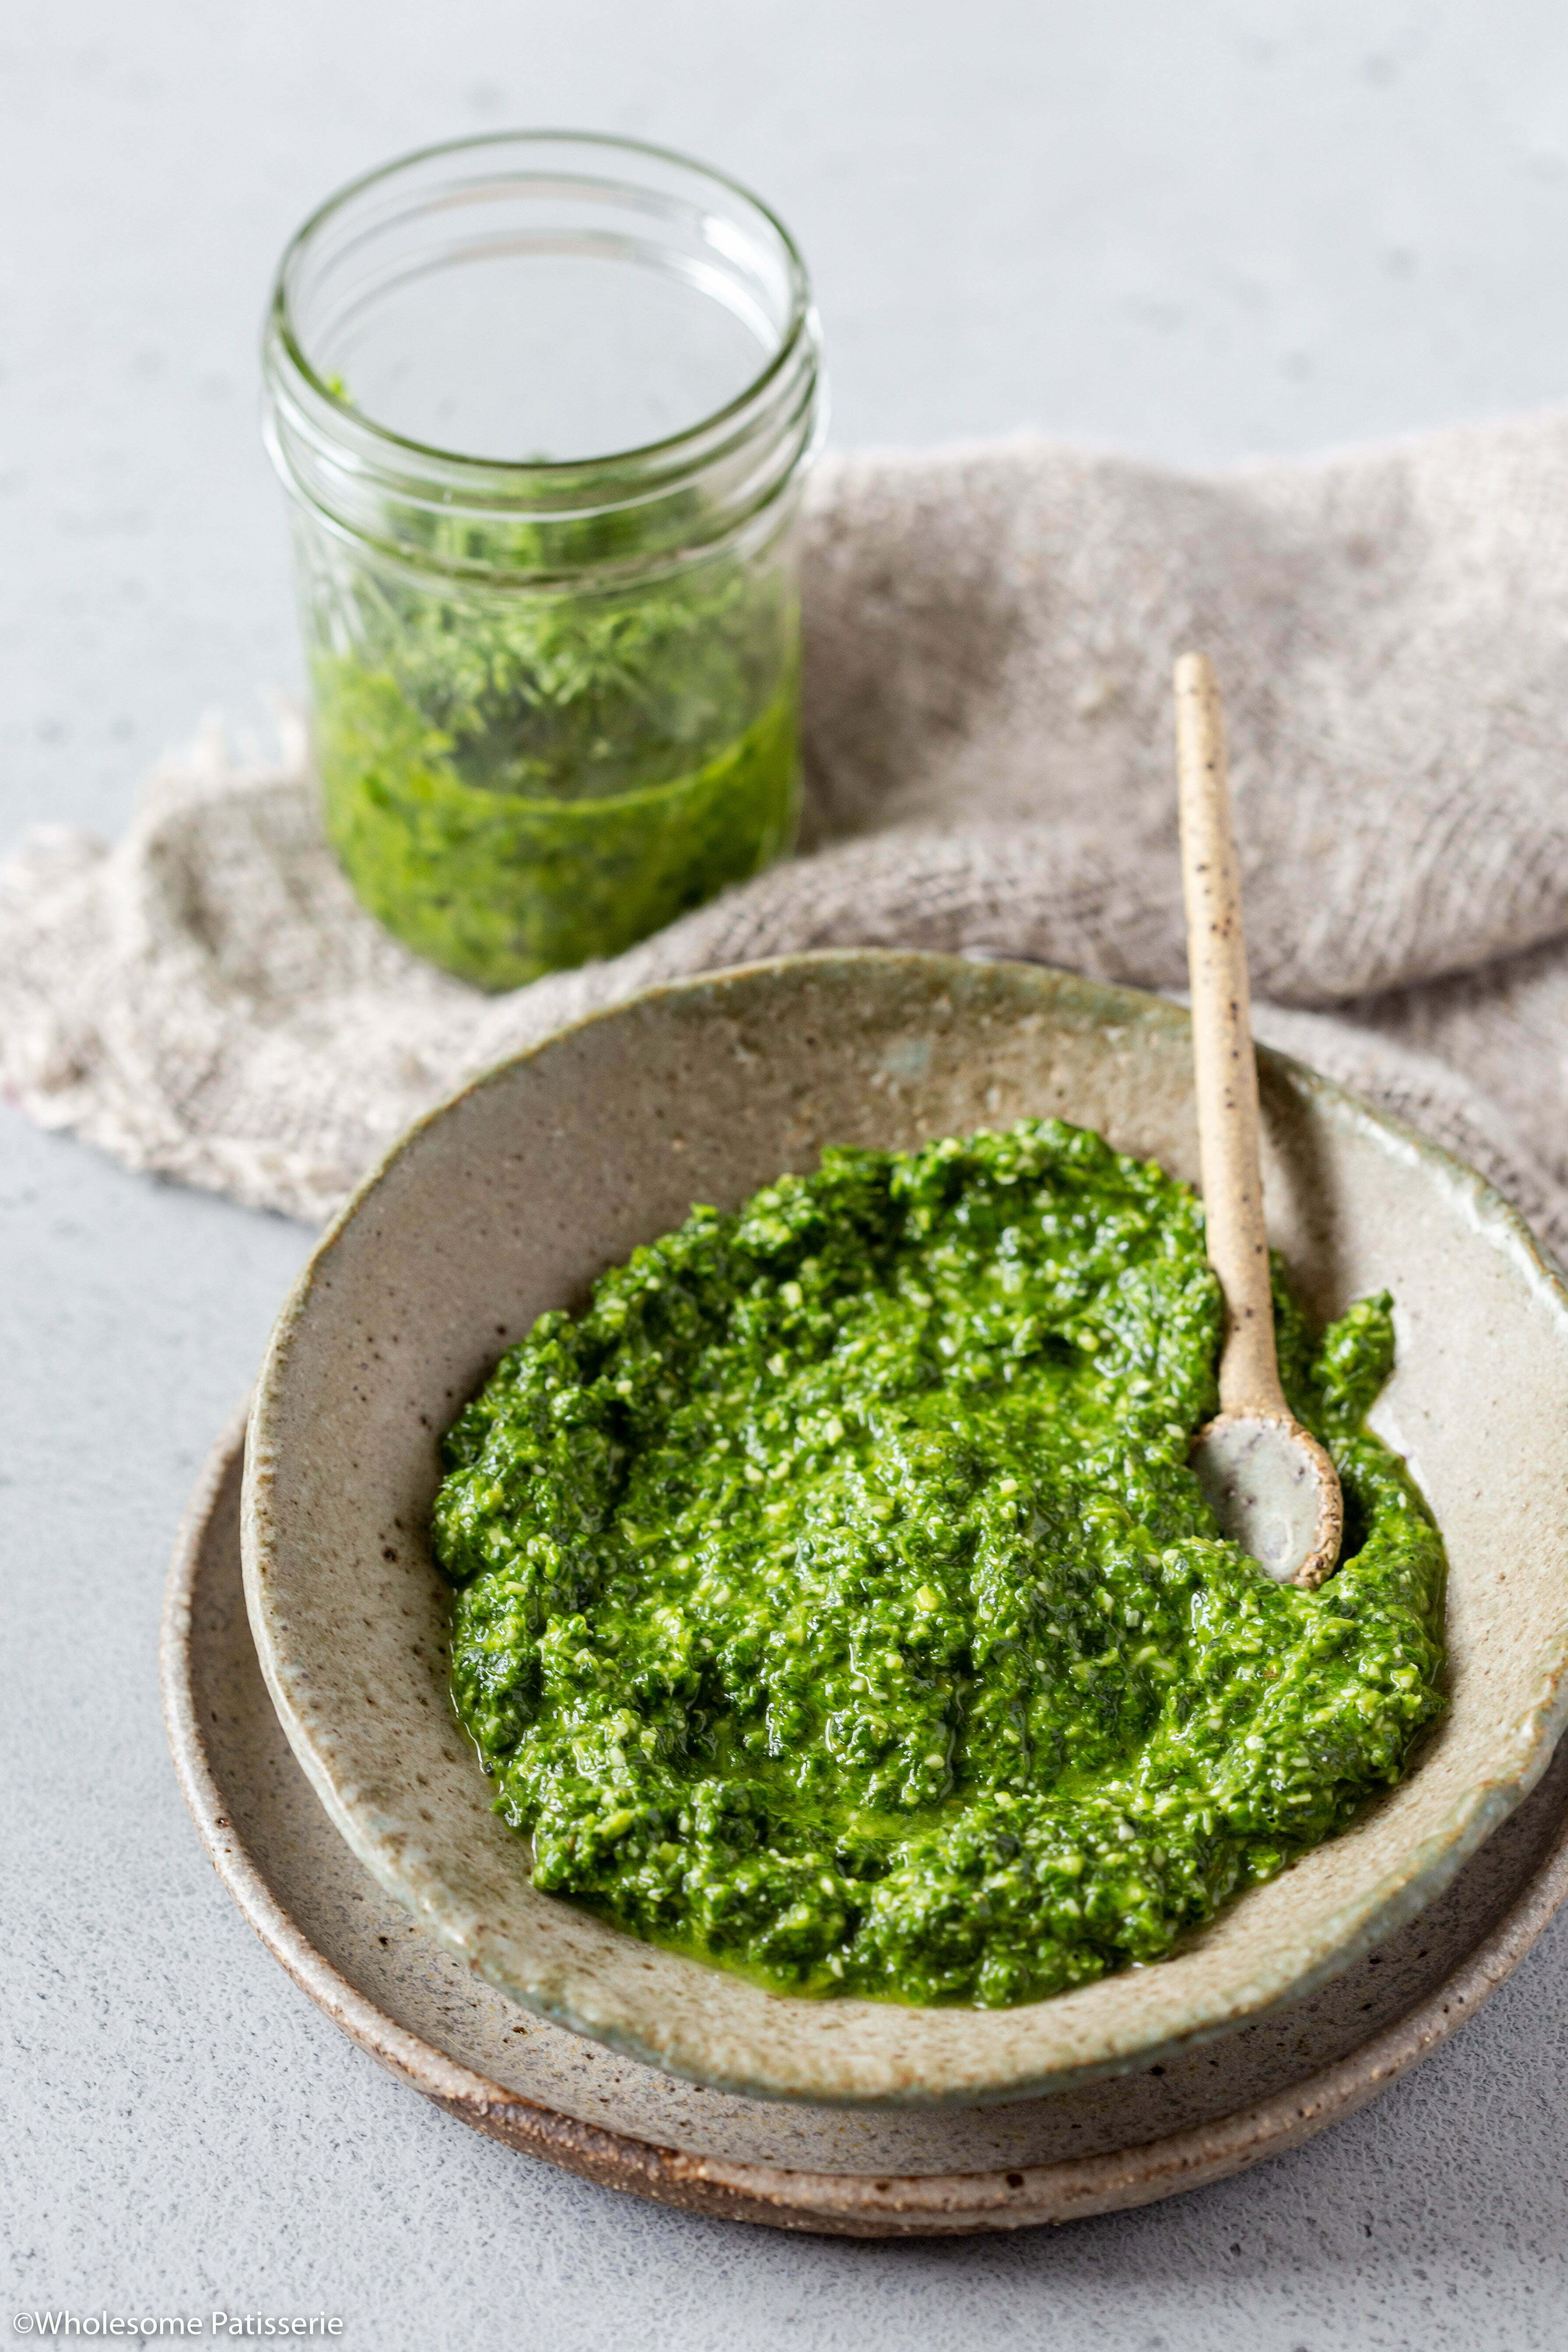 Spinach, Basil and Chive Pesto (Nut Free)! With added fresh ginger and chives, this 10-ingredient homemade pesto pairs well with everything! Can also be made dairy free by replacing the parmesan cheese with nutritional yeast flakes!